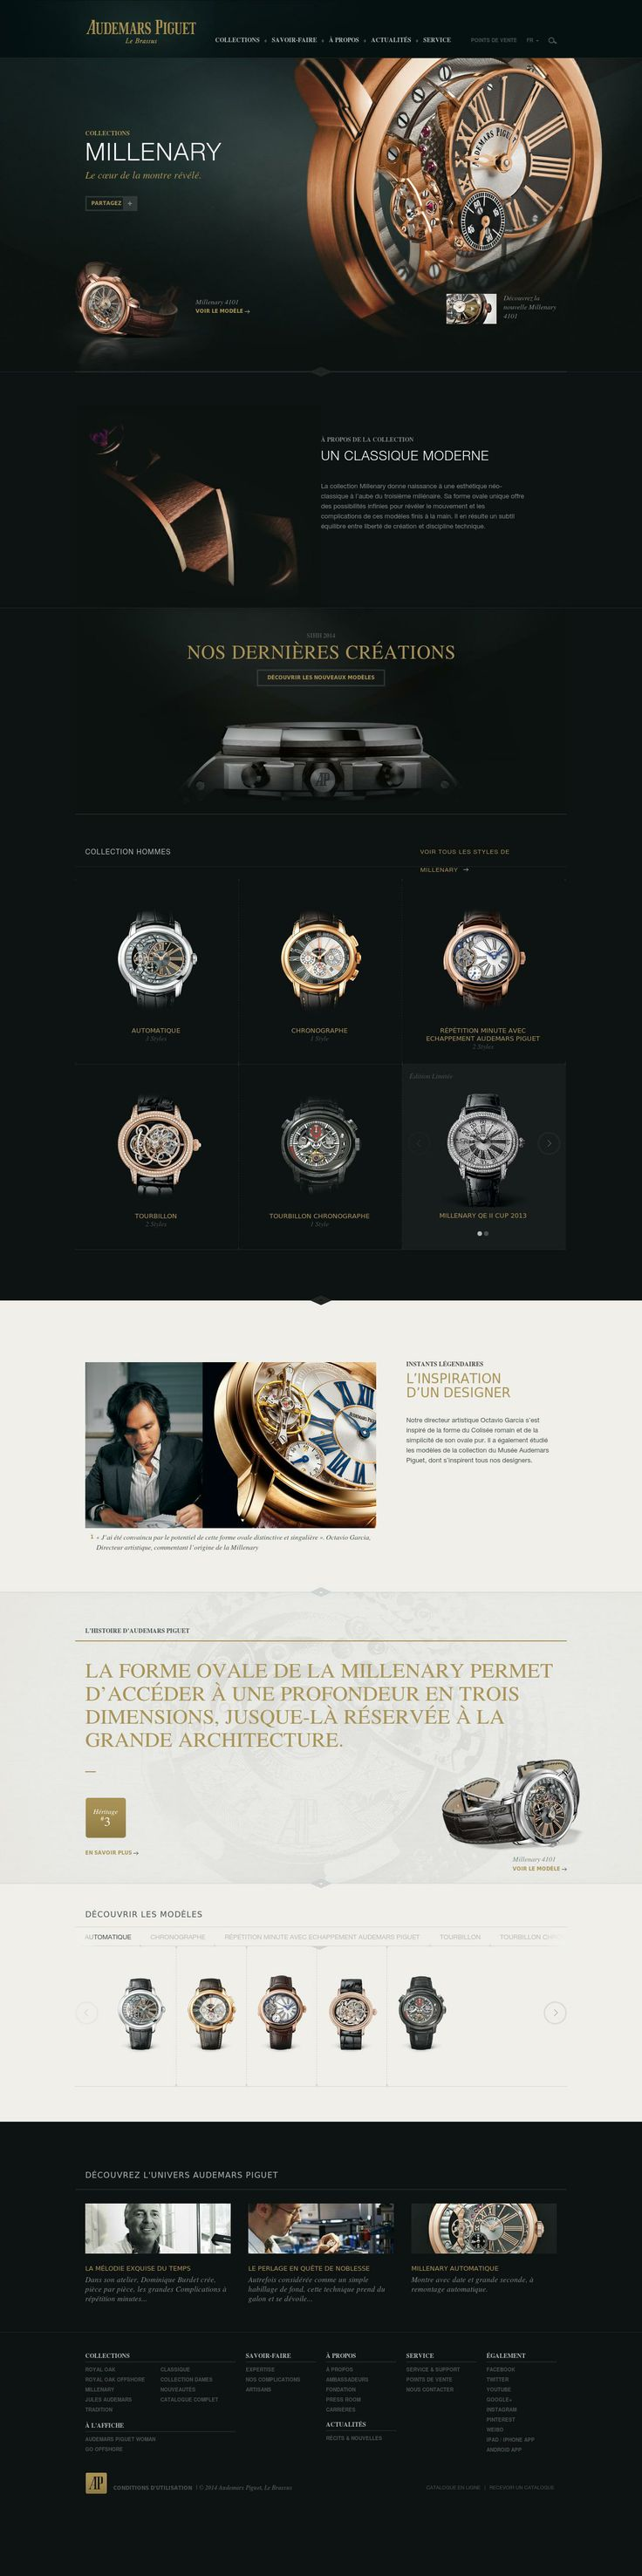 Audemars Piguet website